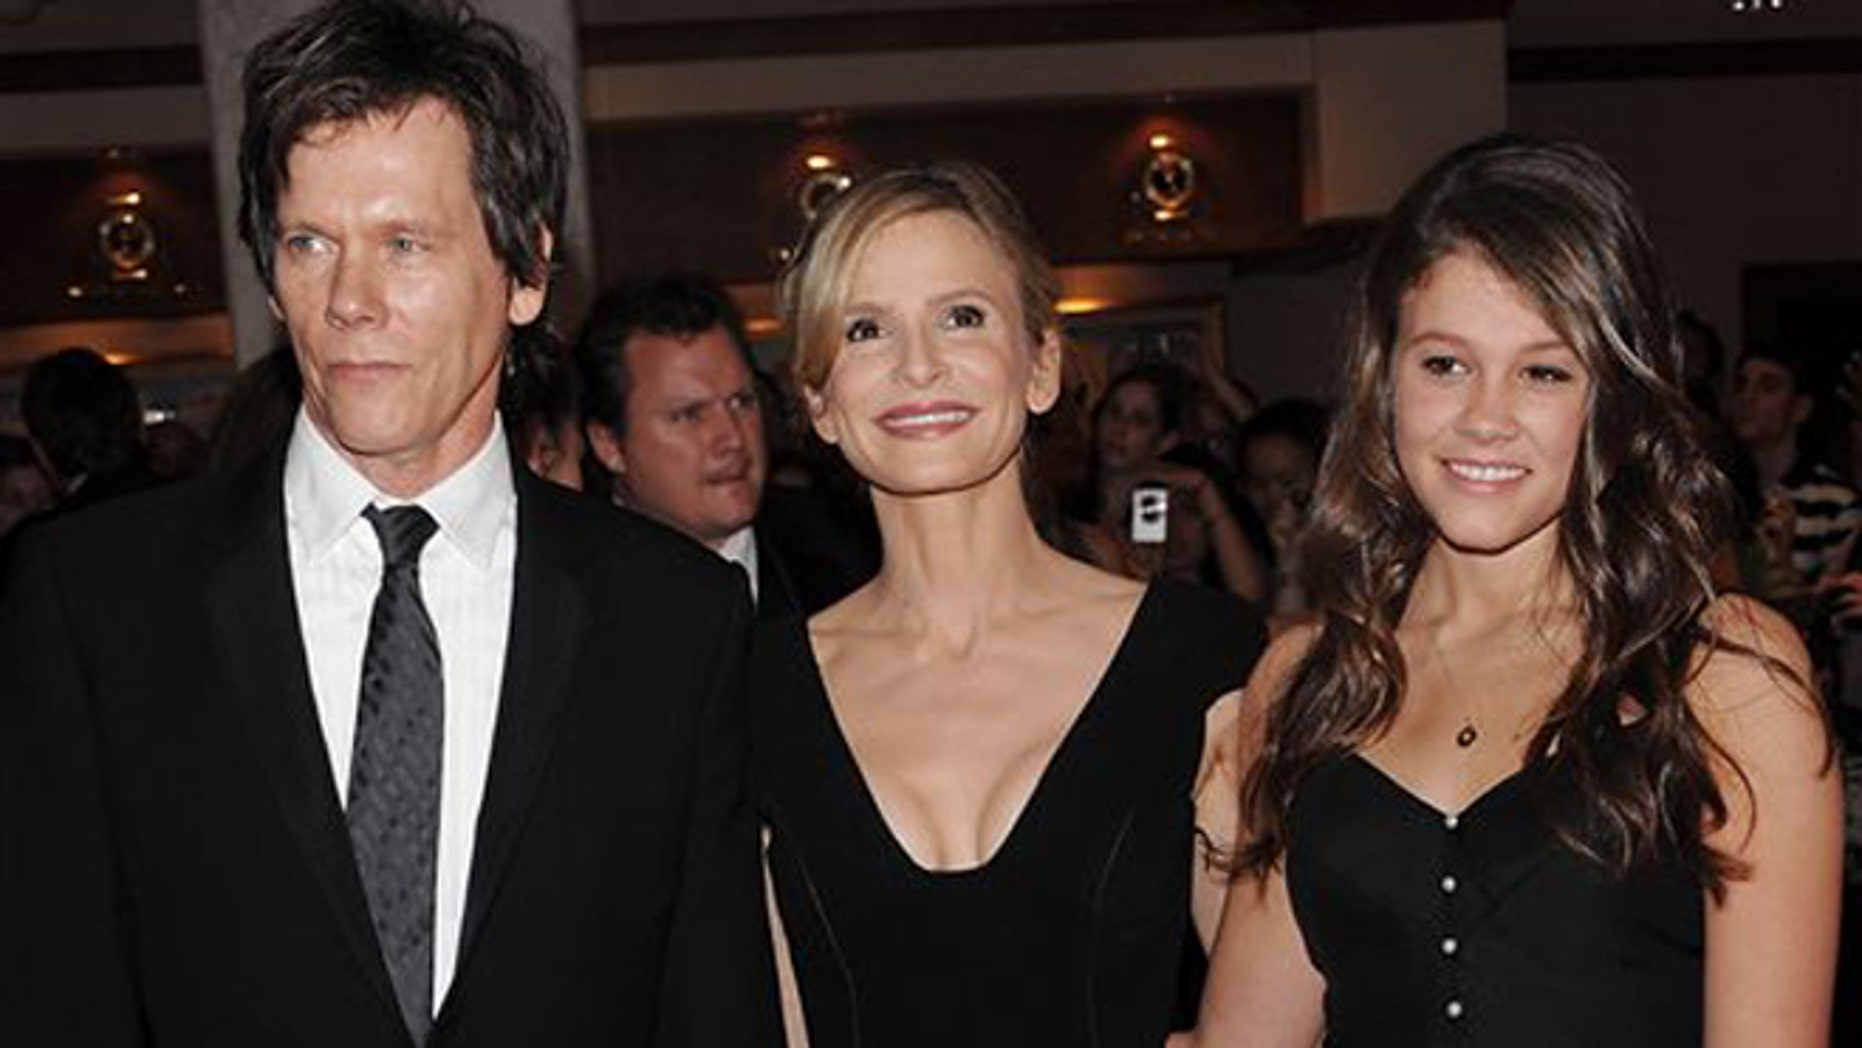 FILE - In this May 9, 2009 file photo, actors Kevin Bacon, left, and Kyra Sedgwick, center, pose with their daughter Sosie Bacon at the 2009 White House Correspondents' Association Dinner at the Washington Hilton, in Washington. The Hollywood Foreign Press Association has selected the actress Sosie Bacon as Miss Golden Globe 2014 for the 71st Annual Golden Globe Awards.  It was announced by the HFPA Thursday, Nov. 21, 2013, at an event held at Fig and Olive in West Hollywood, Calif. (AP Photo/Evan Agostini)